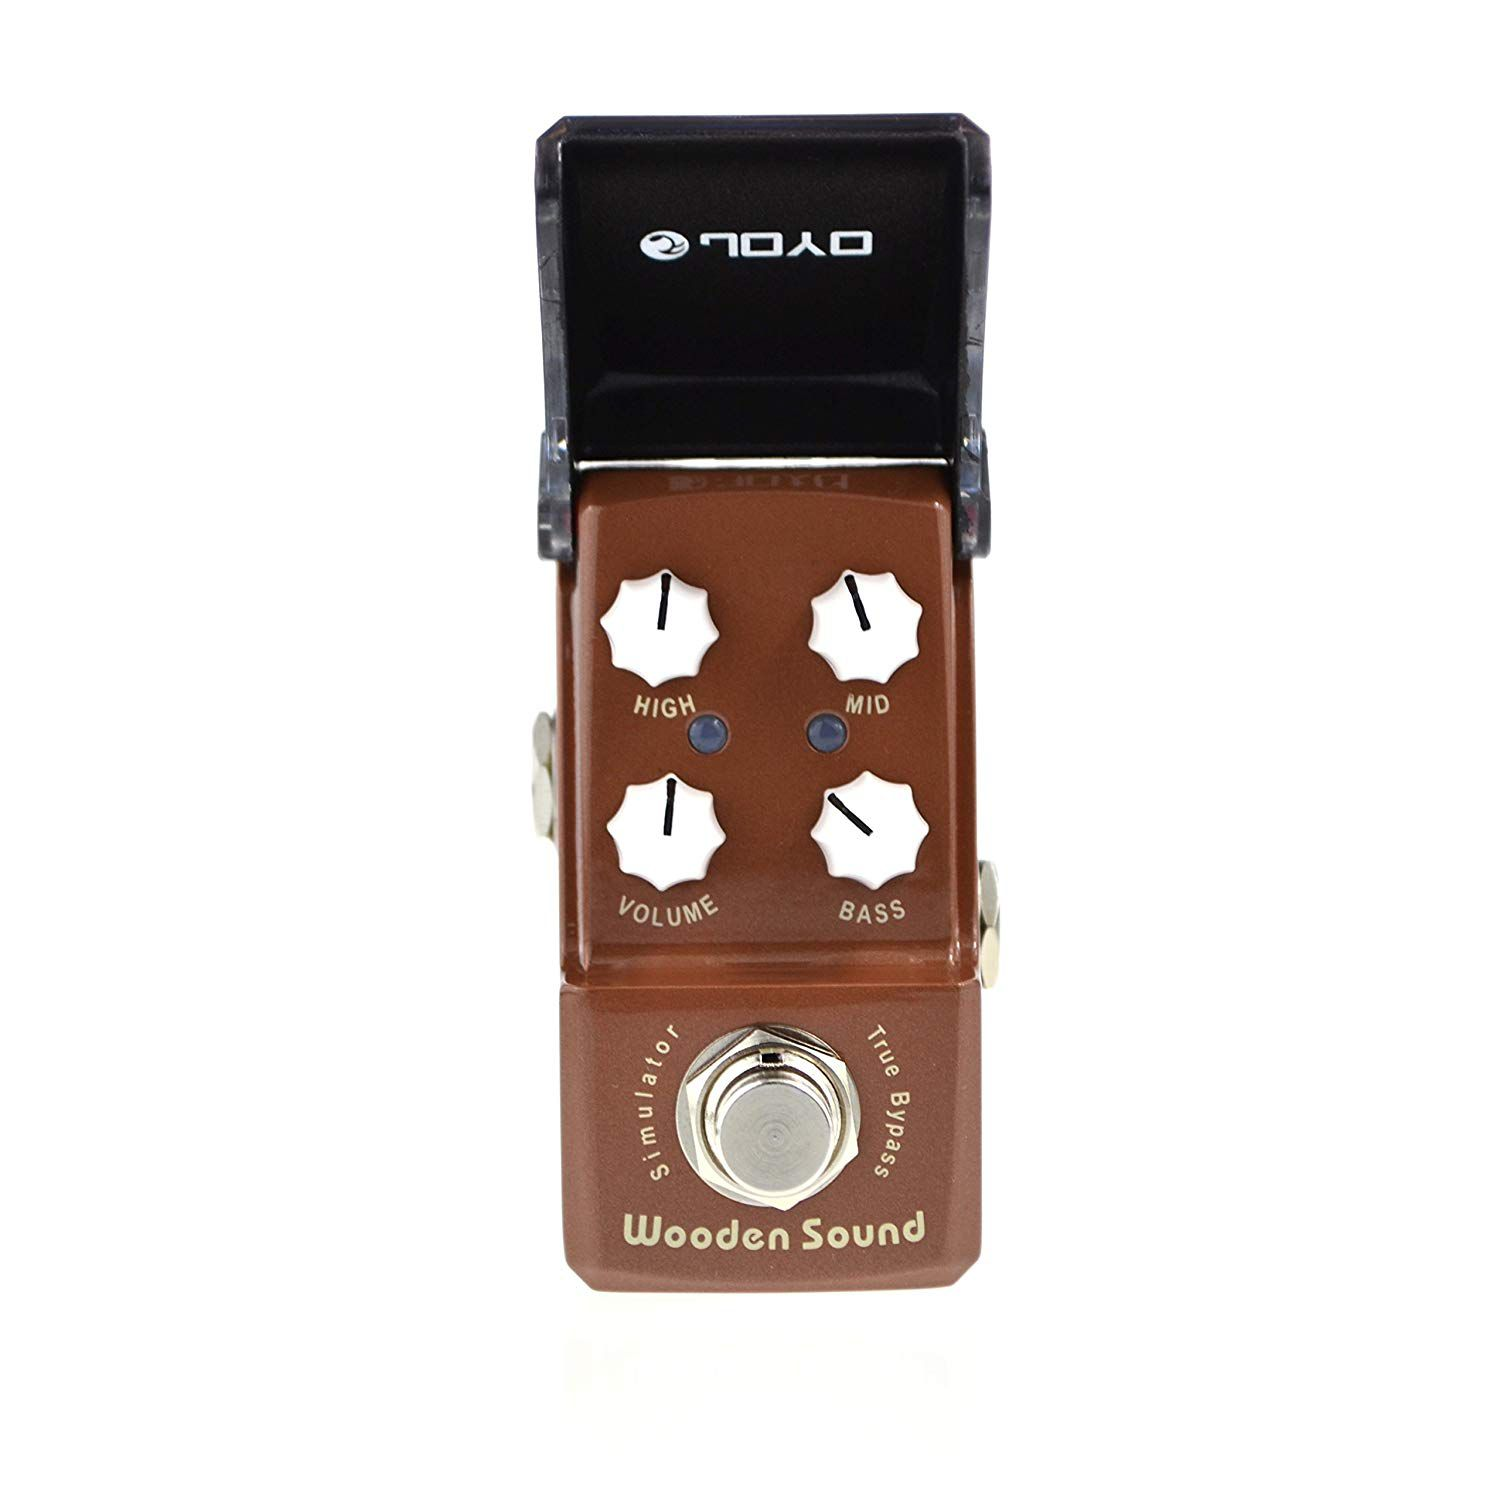 Pedal Digital Joyo Wooden Sound